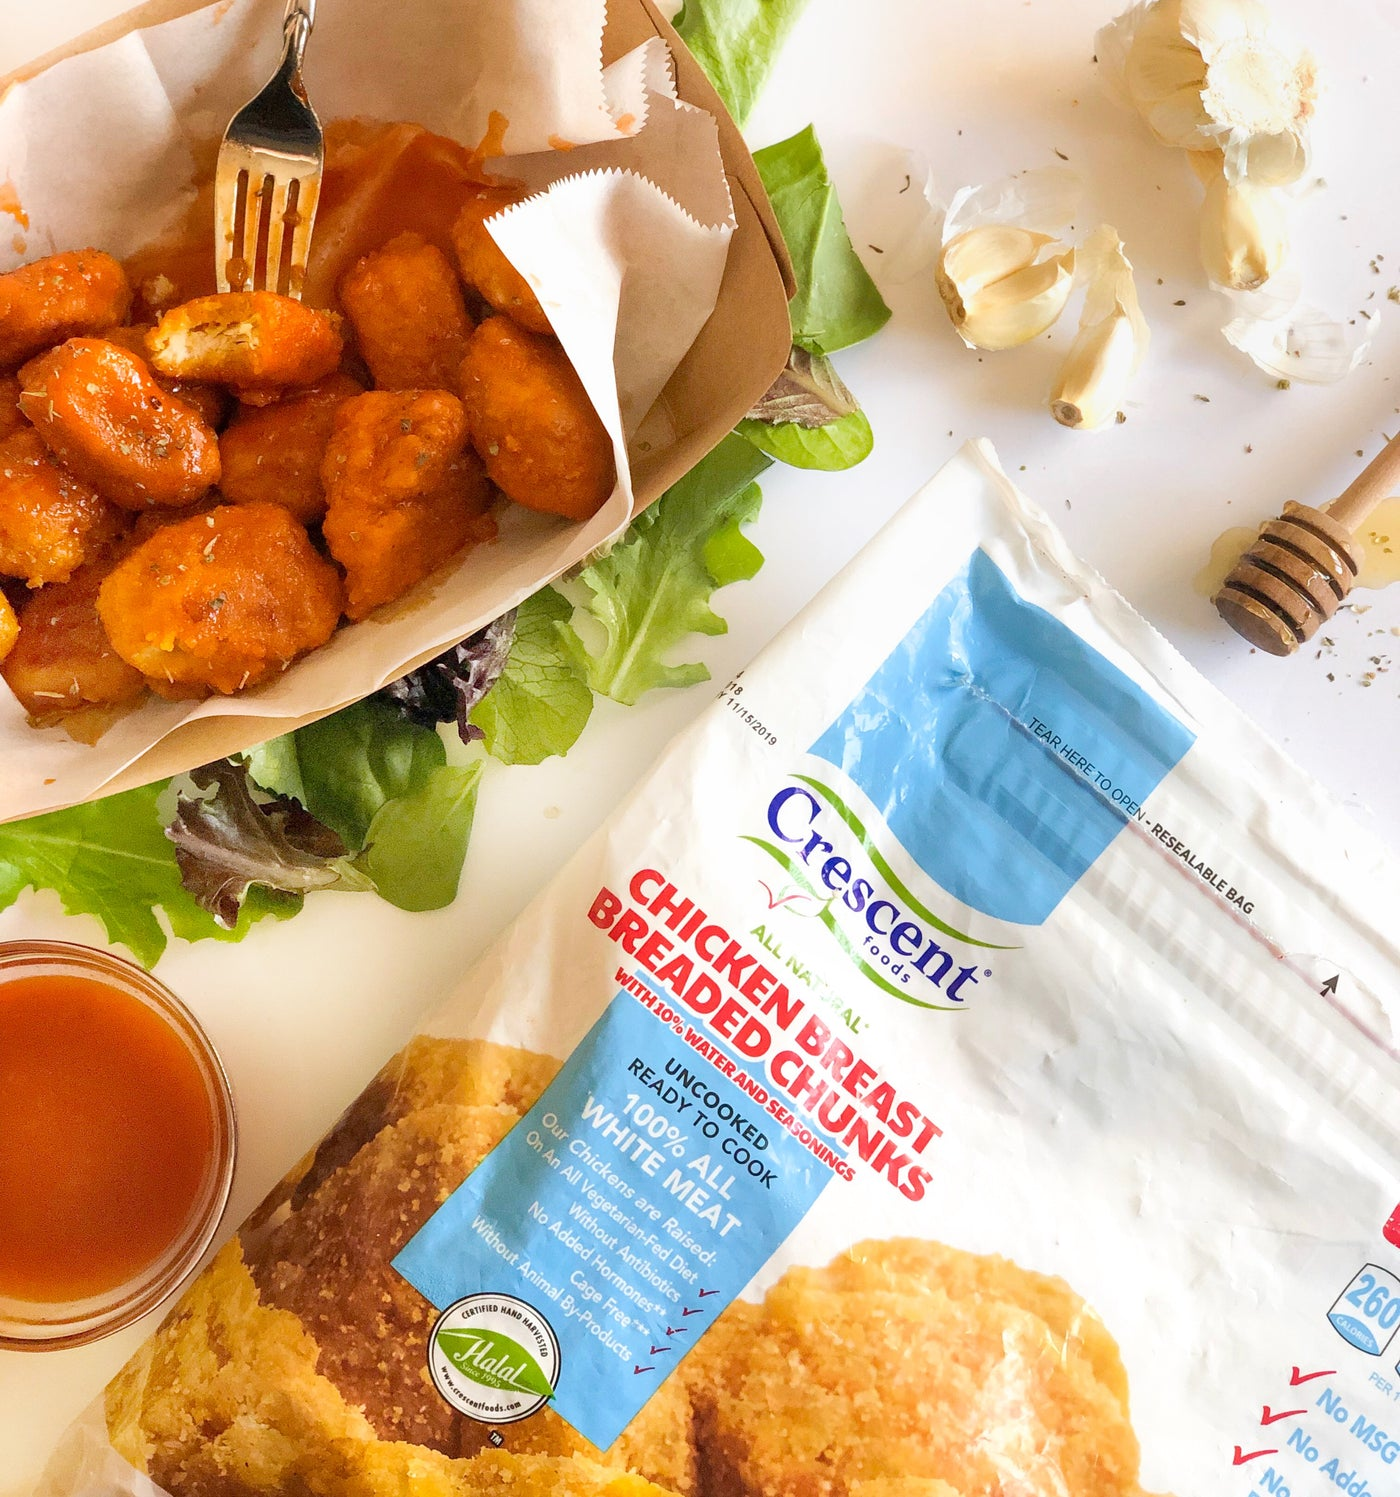 Spicy N' Sweet Chicken Breast Chunks | Home Meat Delivery | Crescent Foods Chicken Breast Breaded Chunks